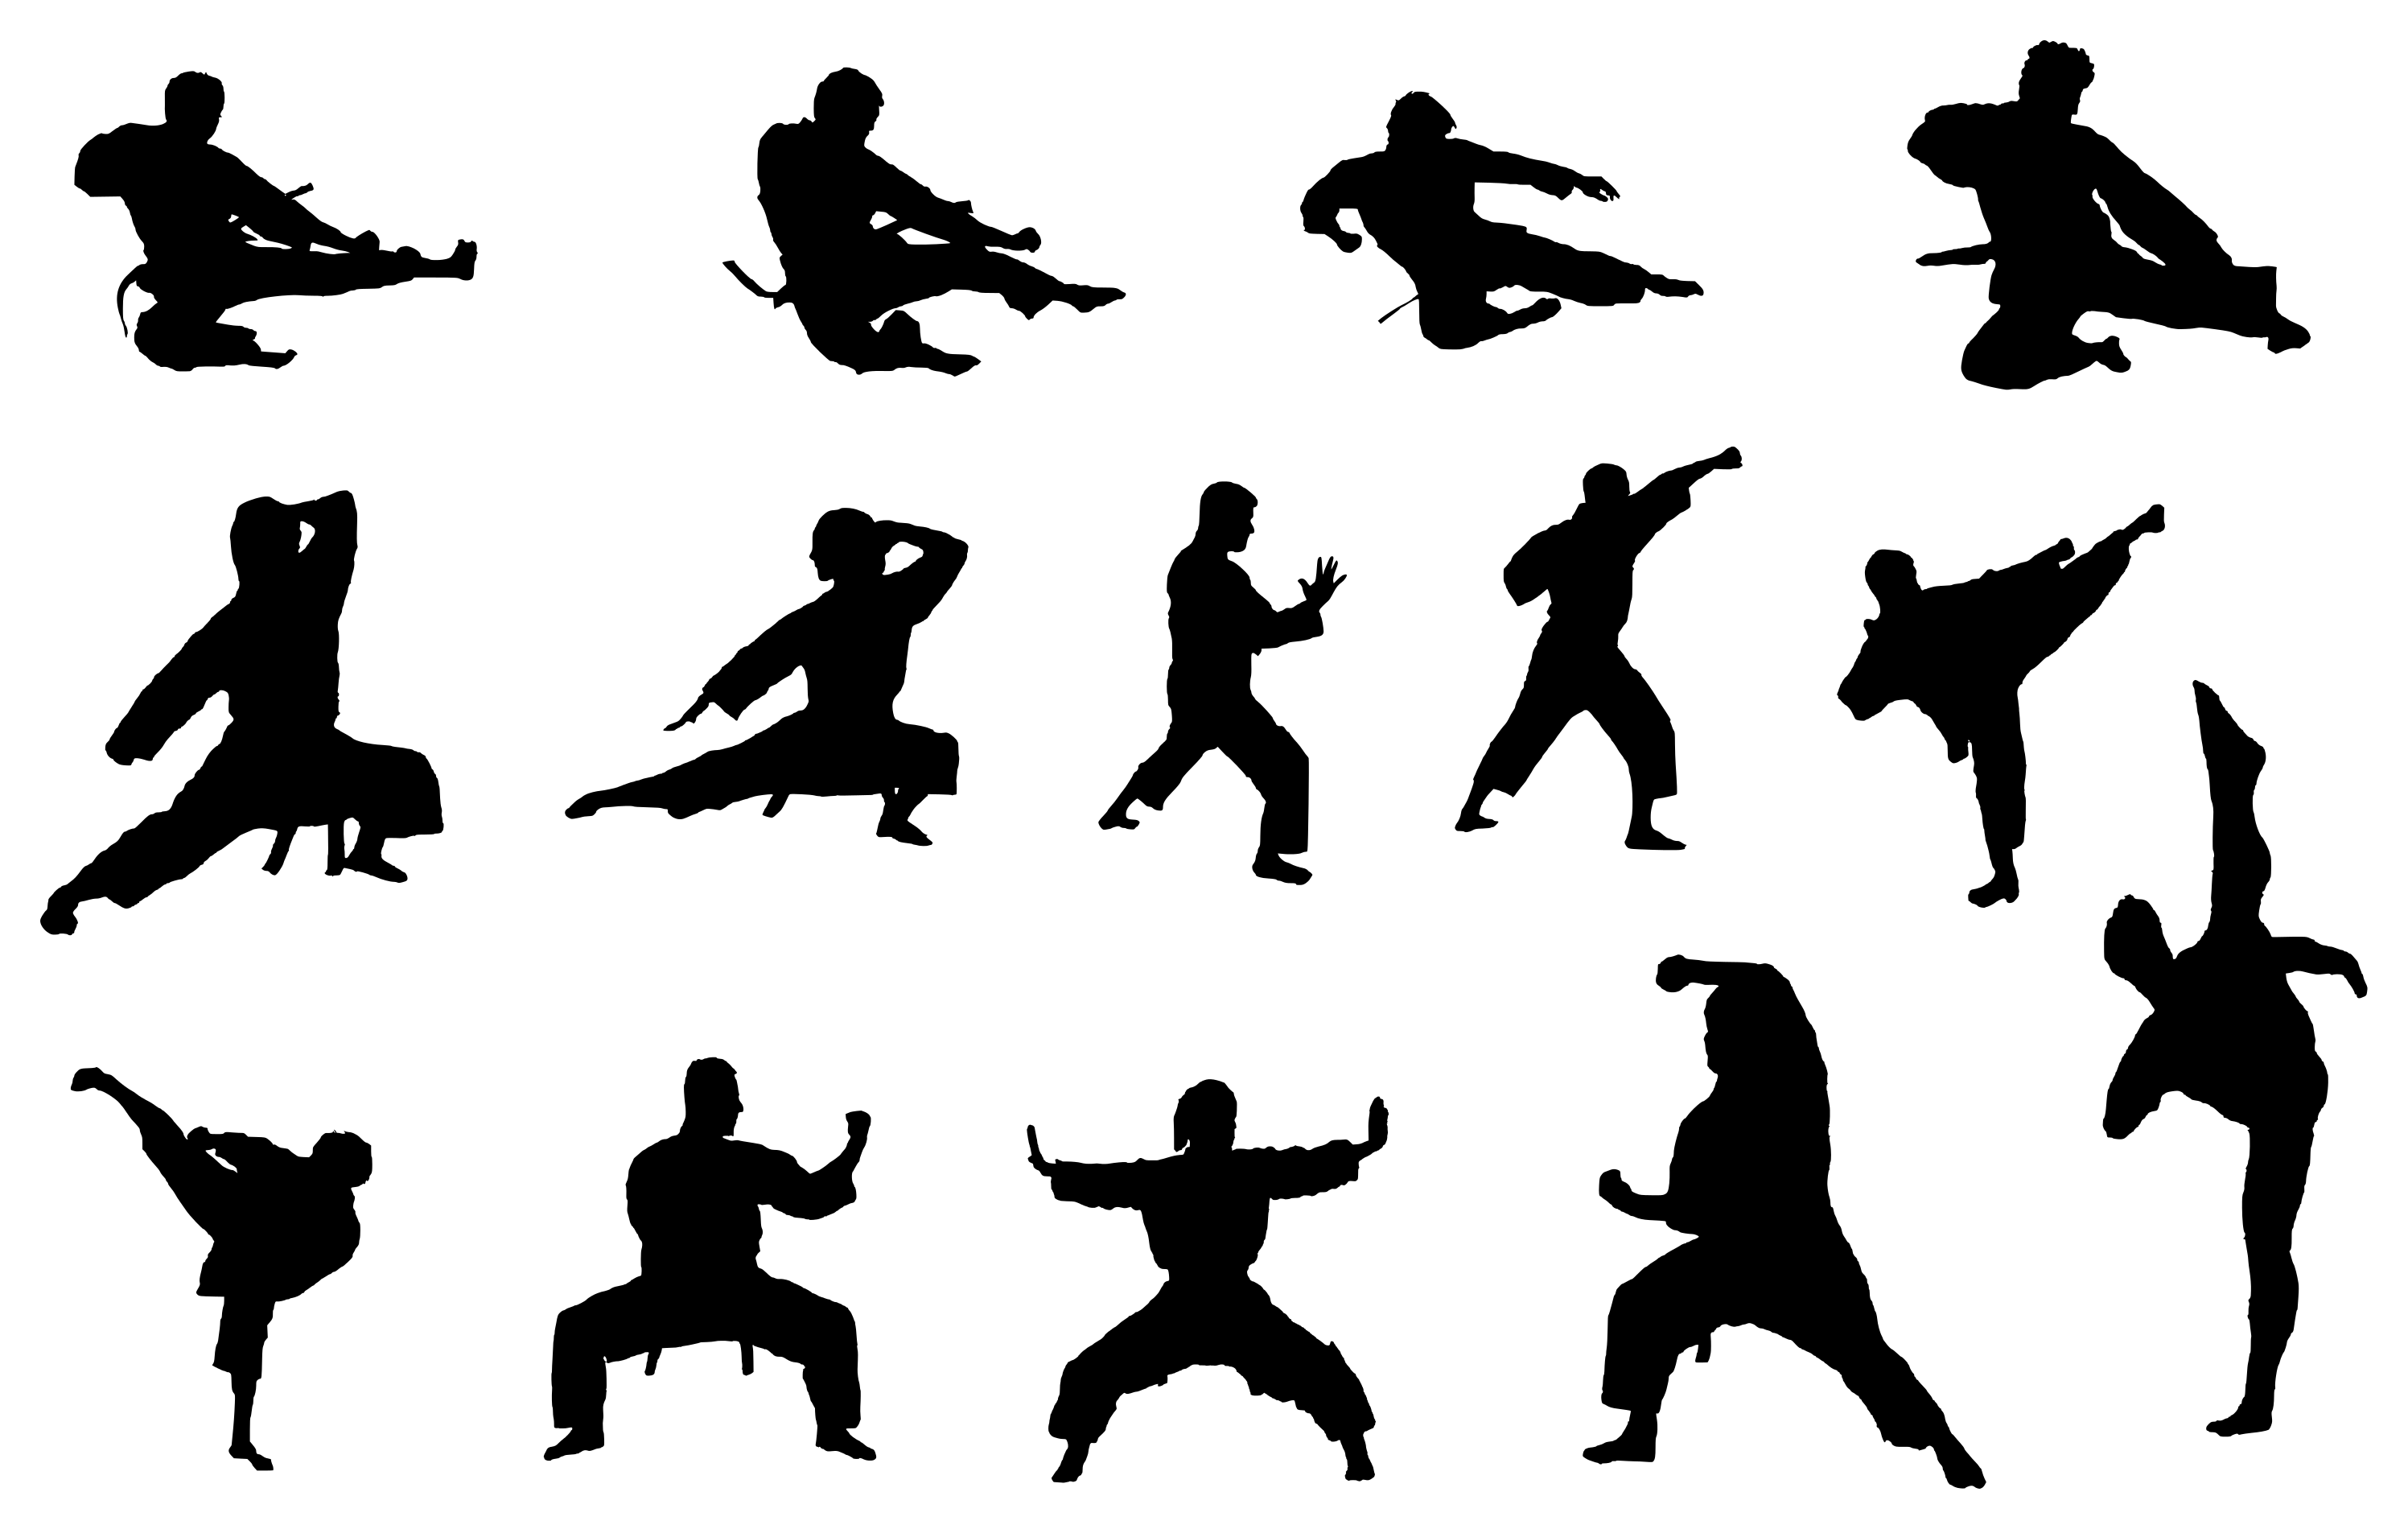 Png Karate - 14 Karate Silhouette (PNG Transparent) | OnlyGFX.com